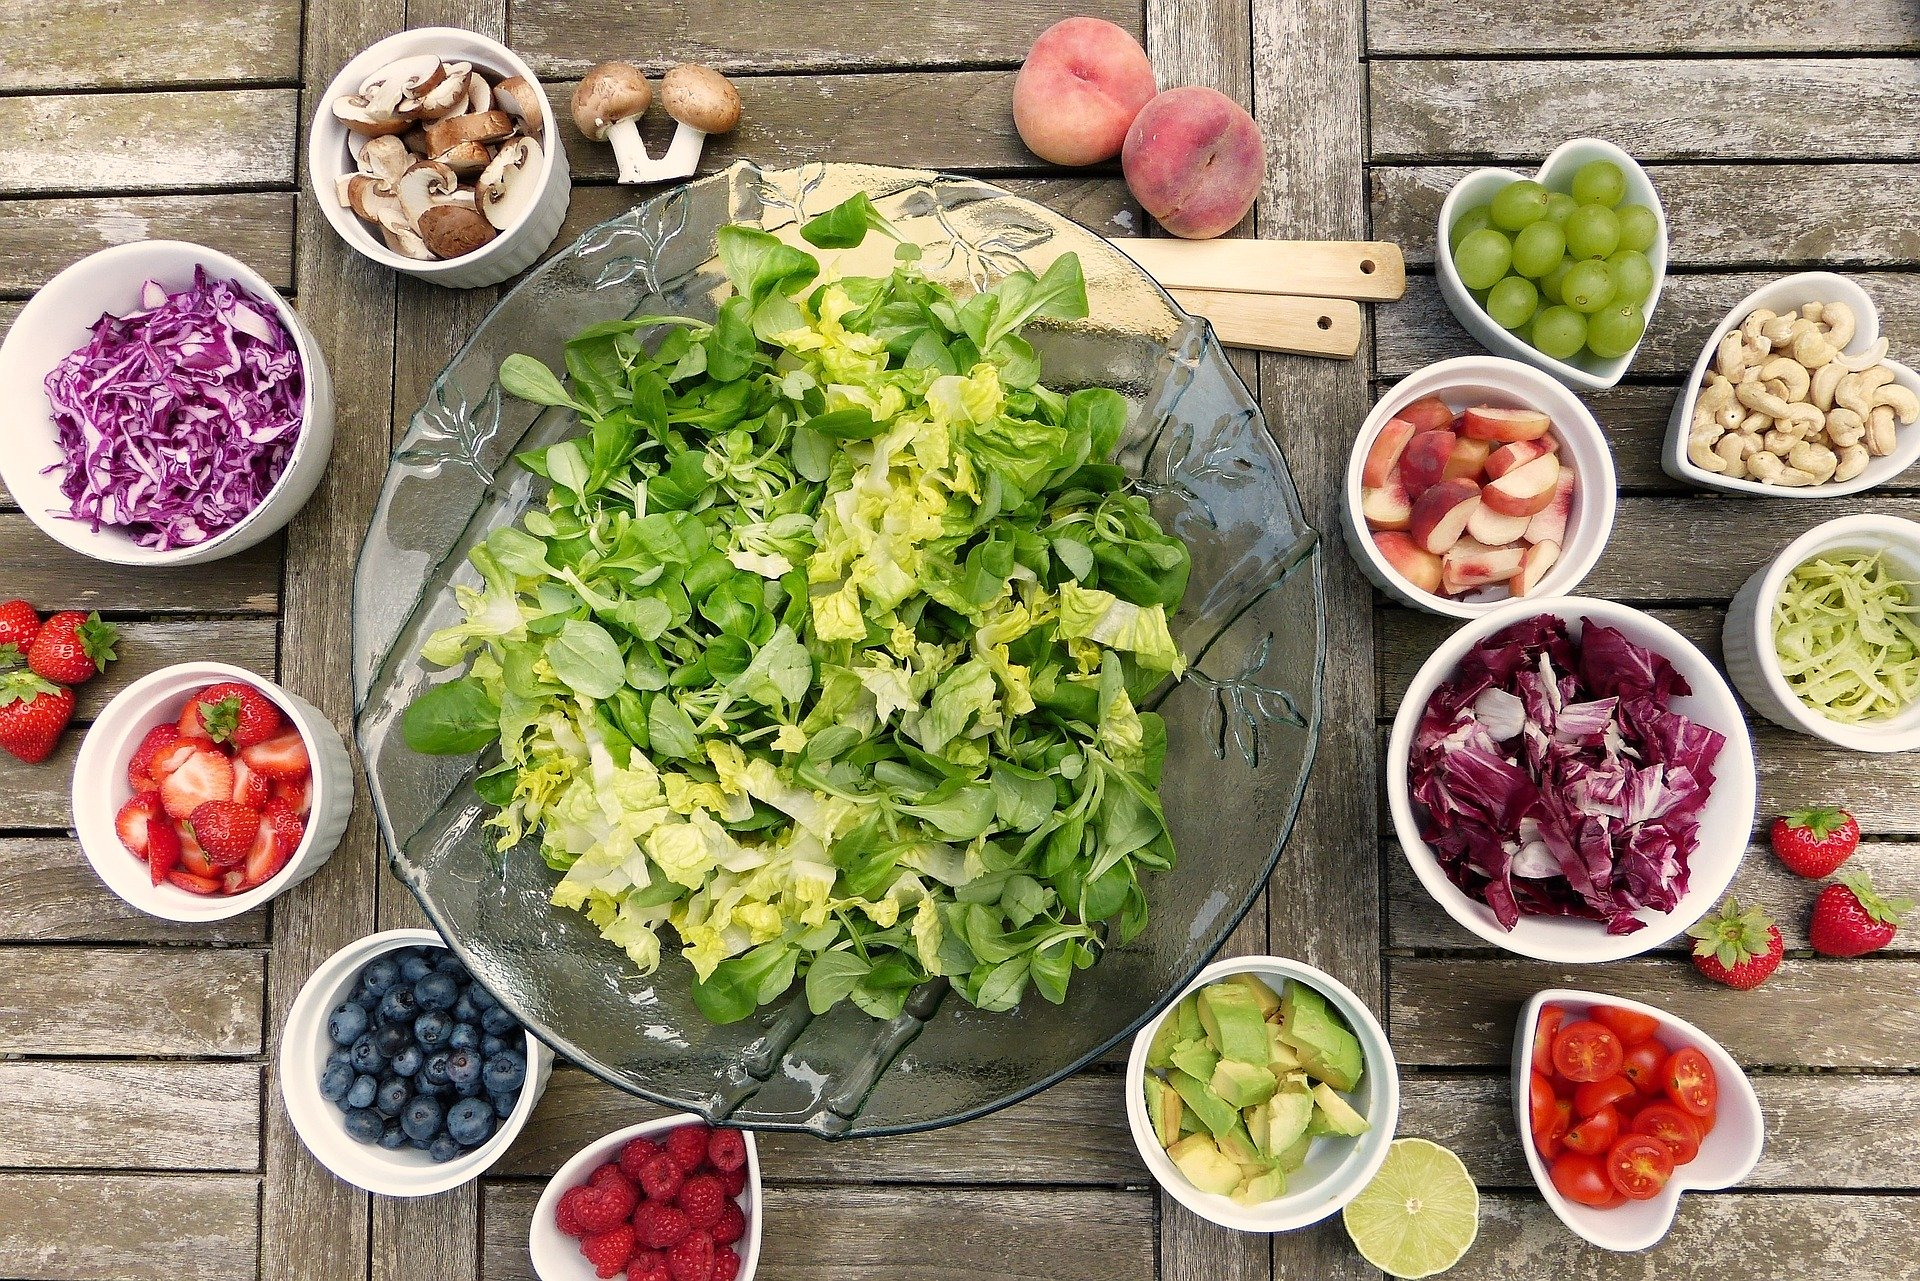 getting o,re vegetables in your diet